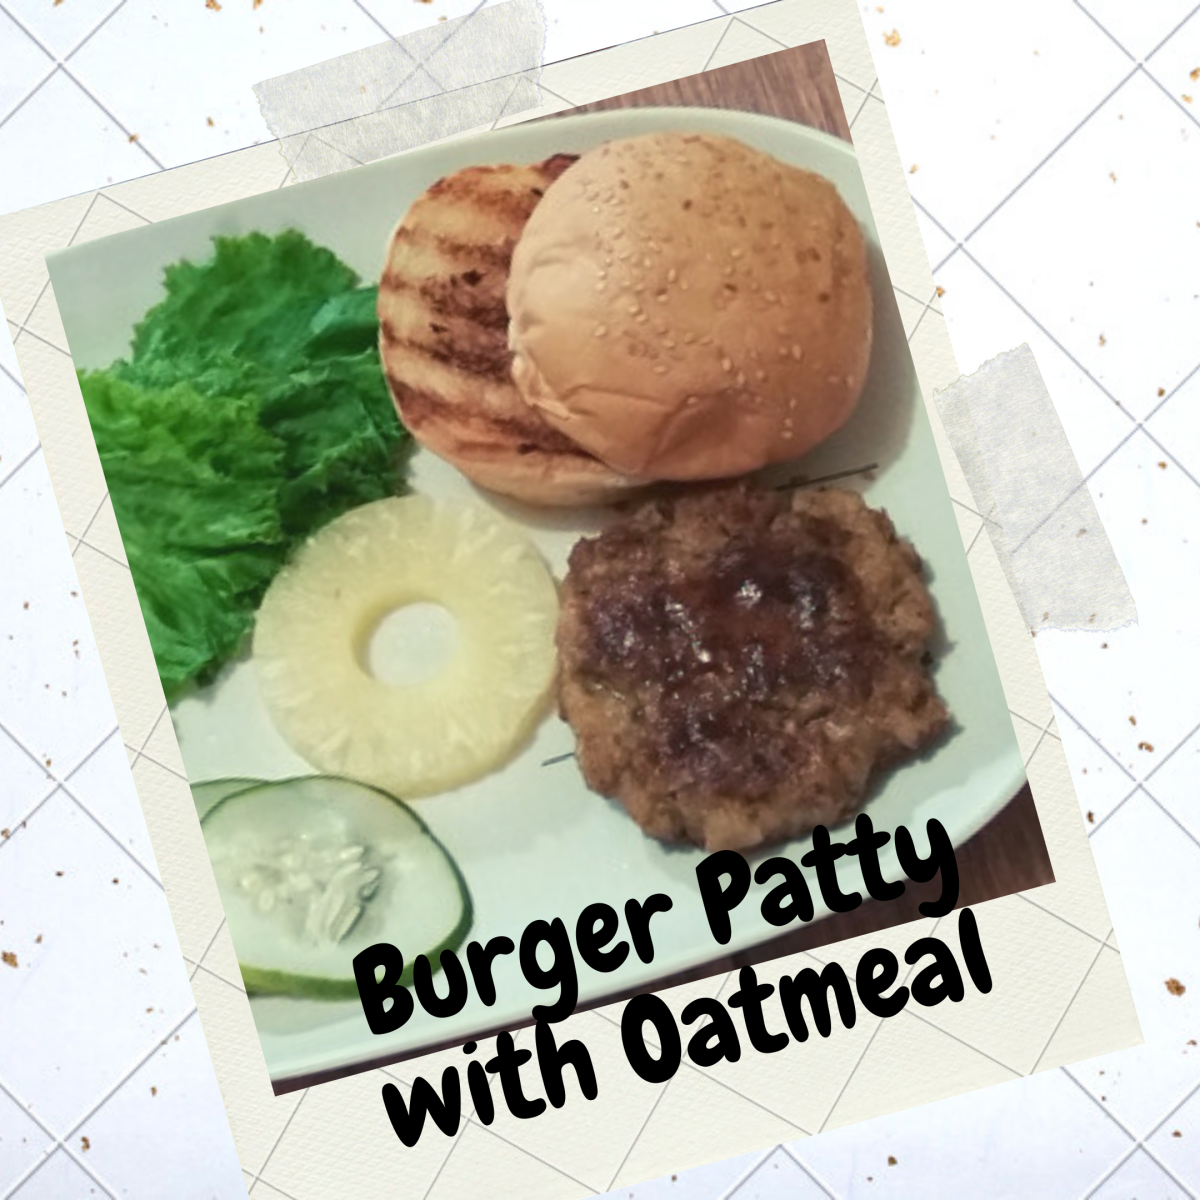 How to Make a Beef Burger Patty With Oatmeal